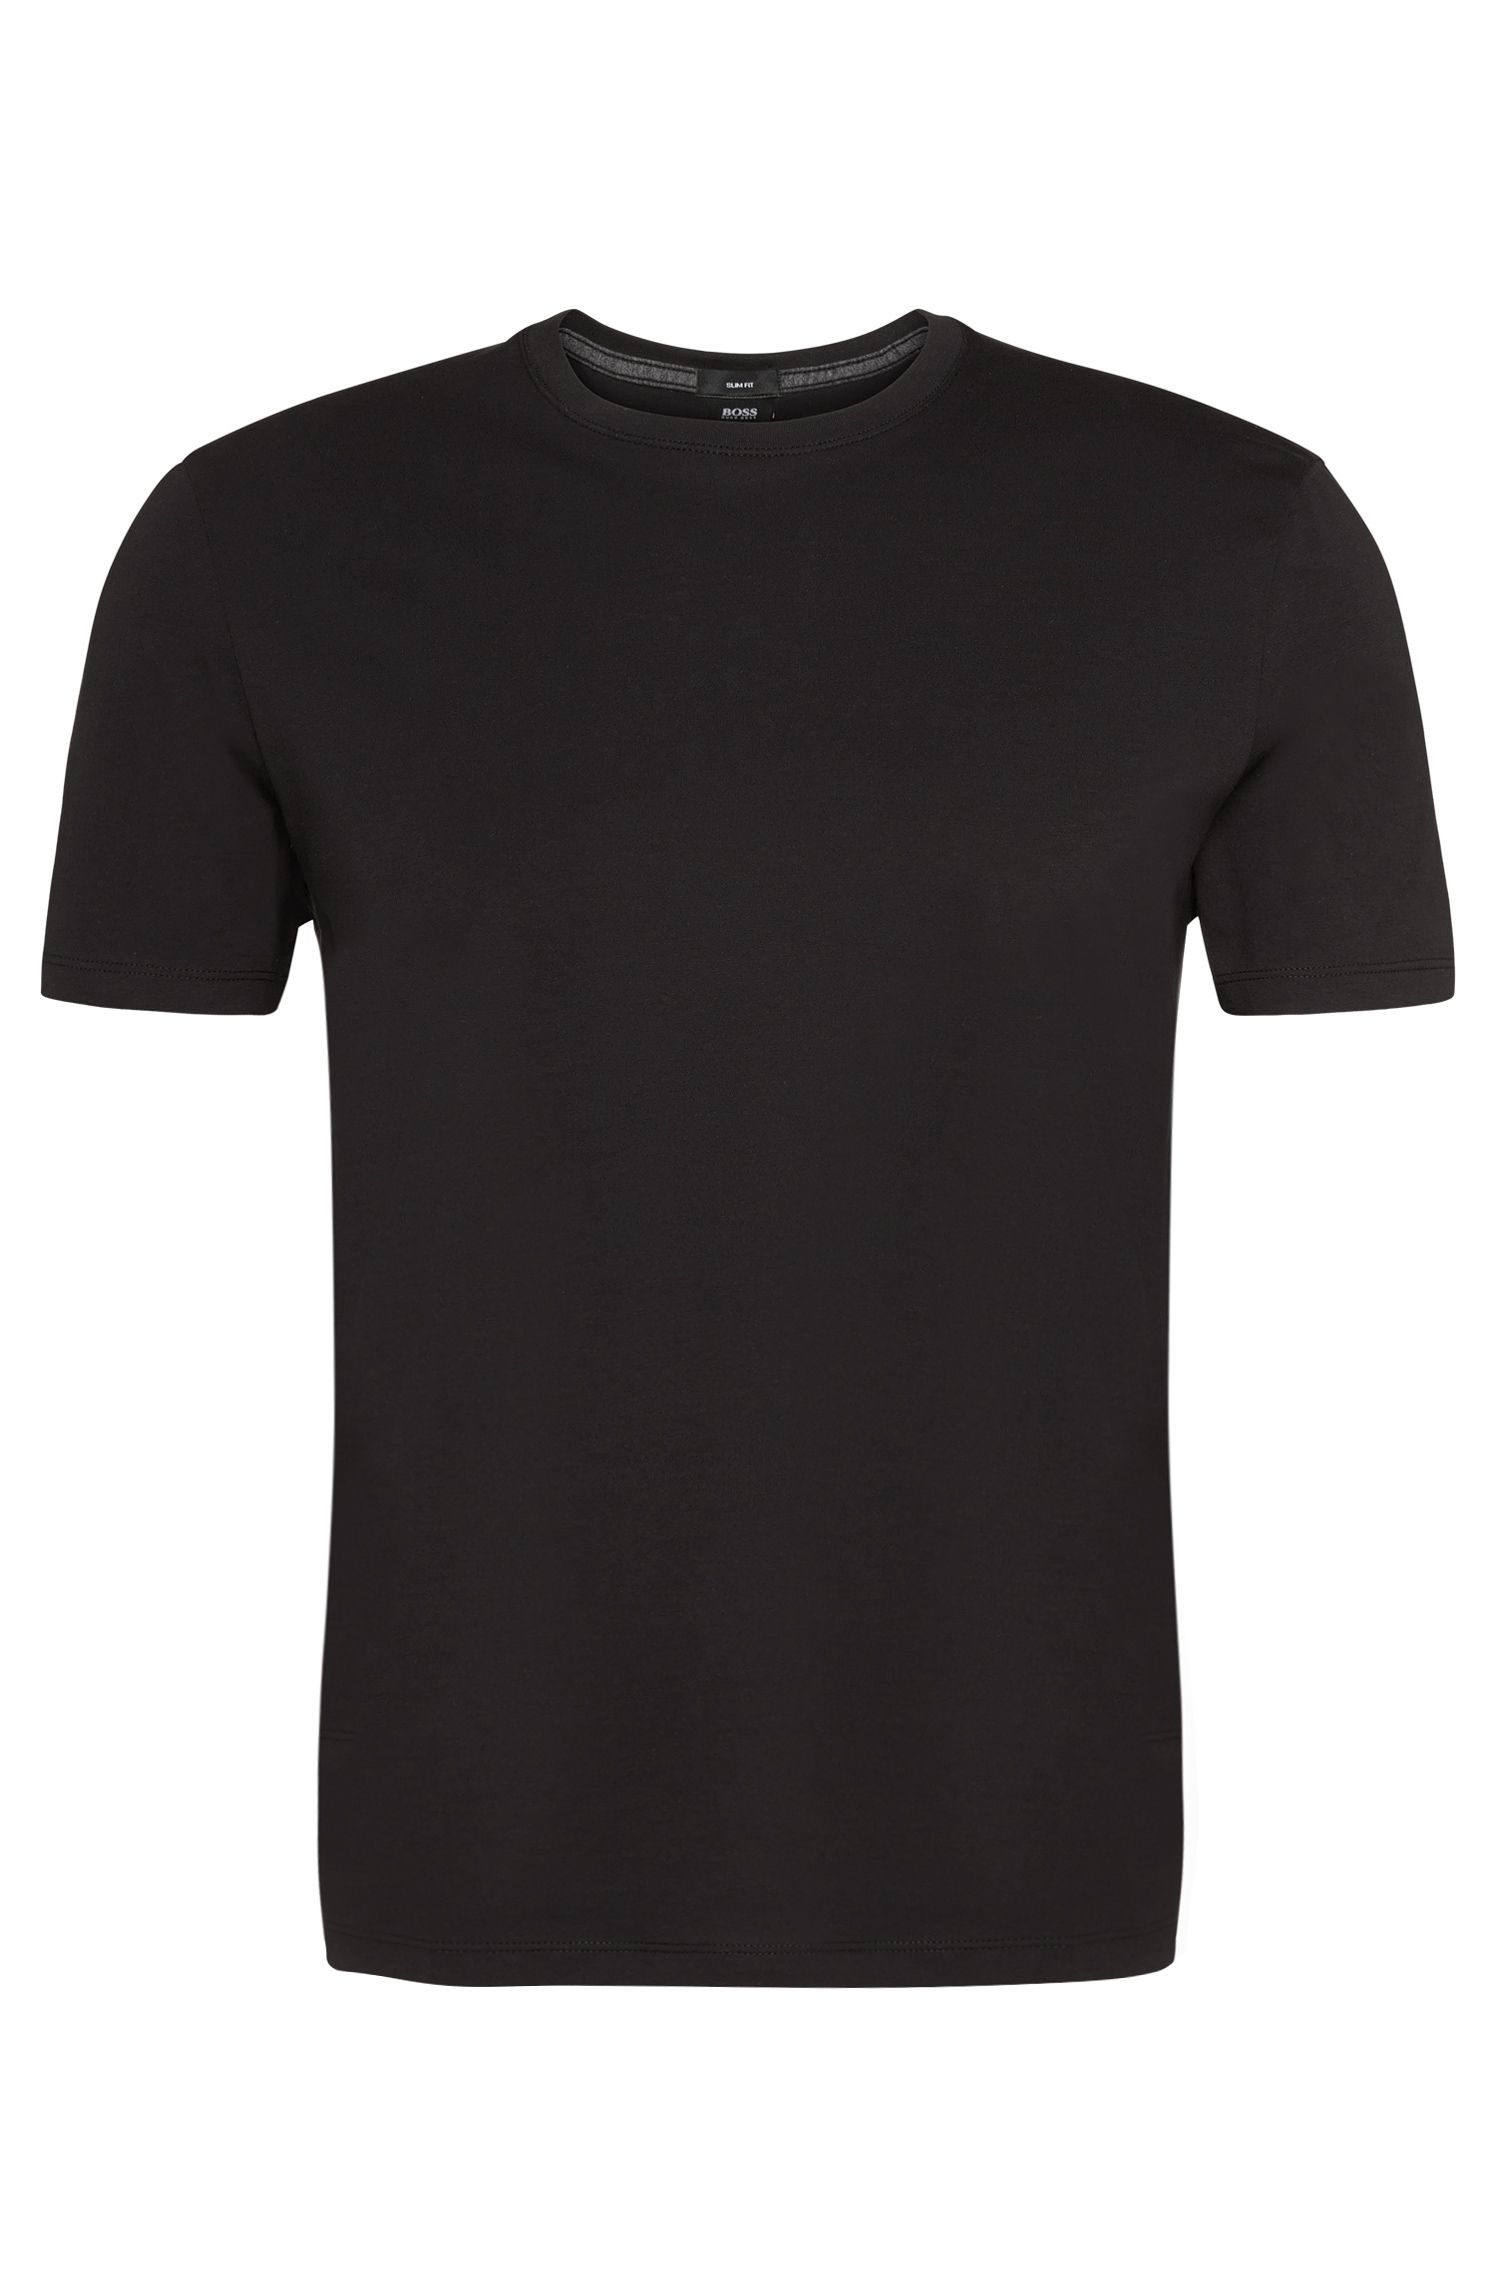 T-shirt Slim-Fit in cotone: 'Tessler 09'